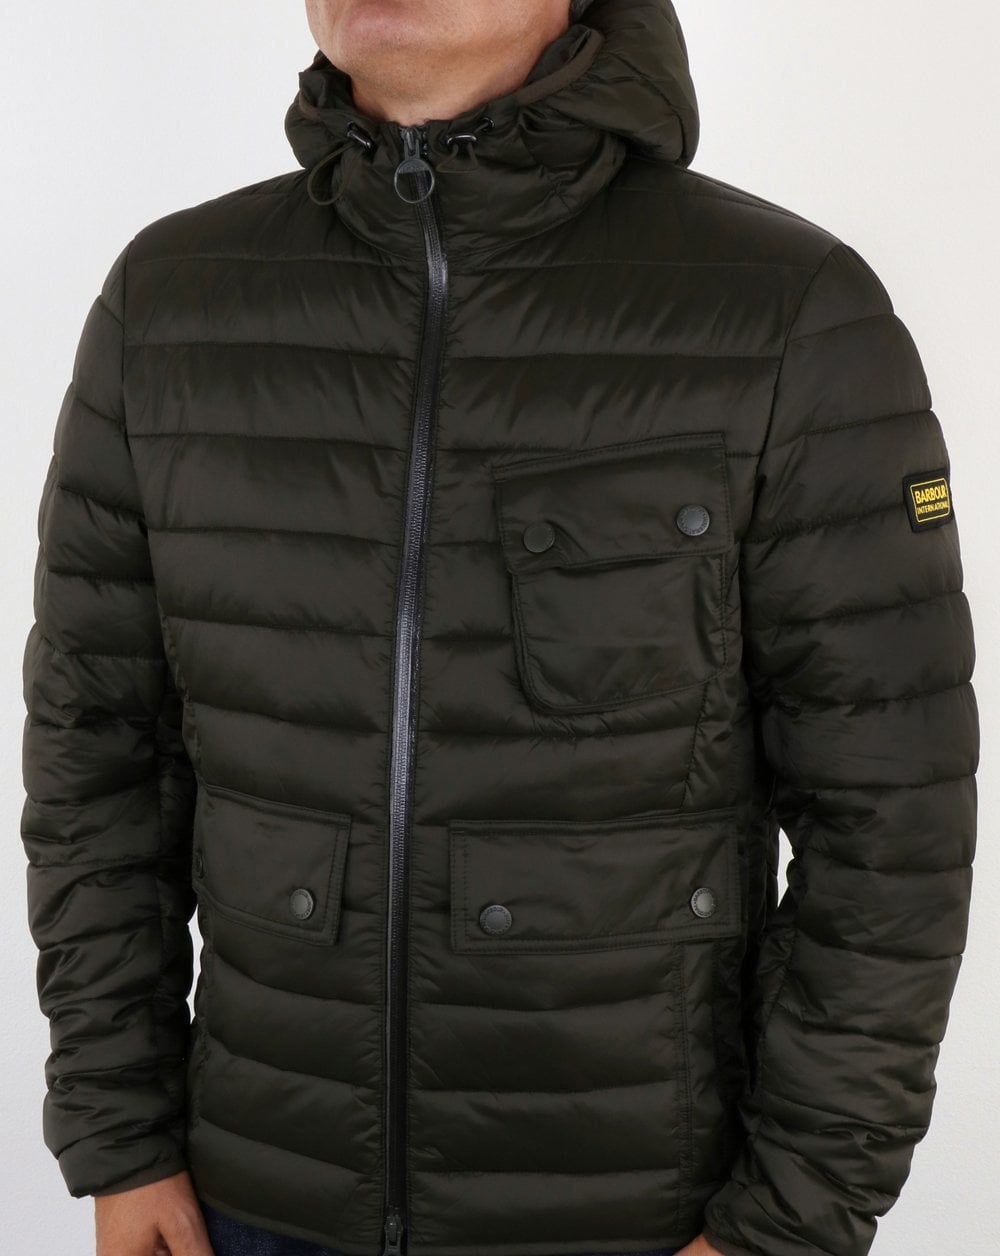 Barbour Ouston Hooded Padded Jacket Olive Quilted Coat